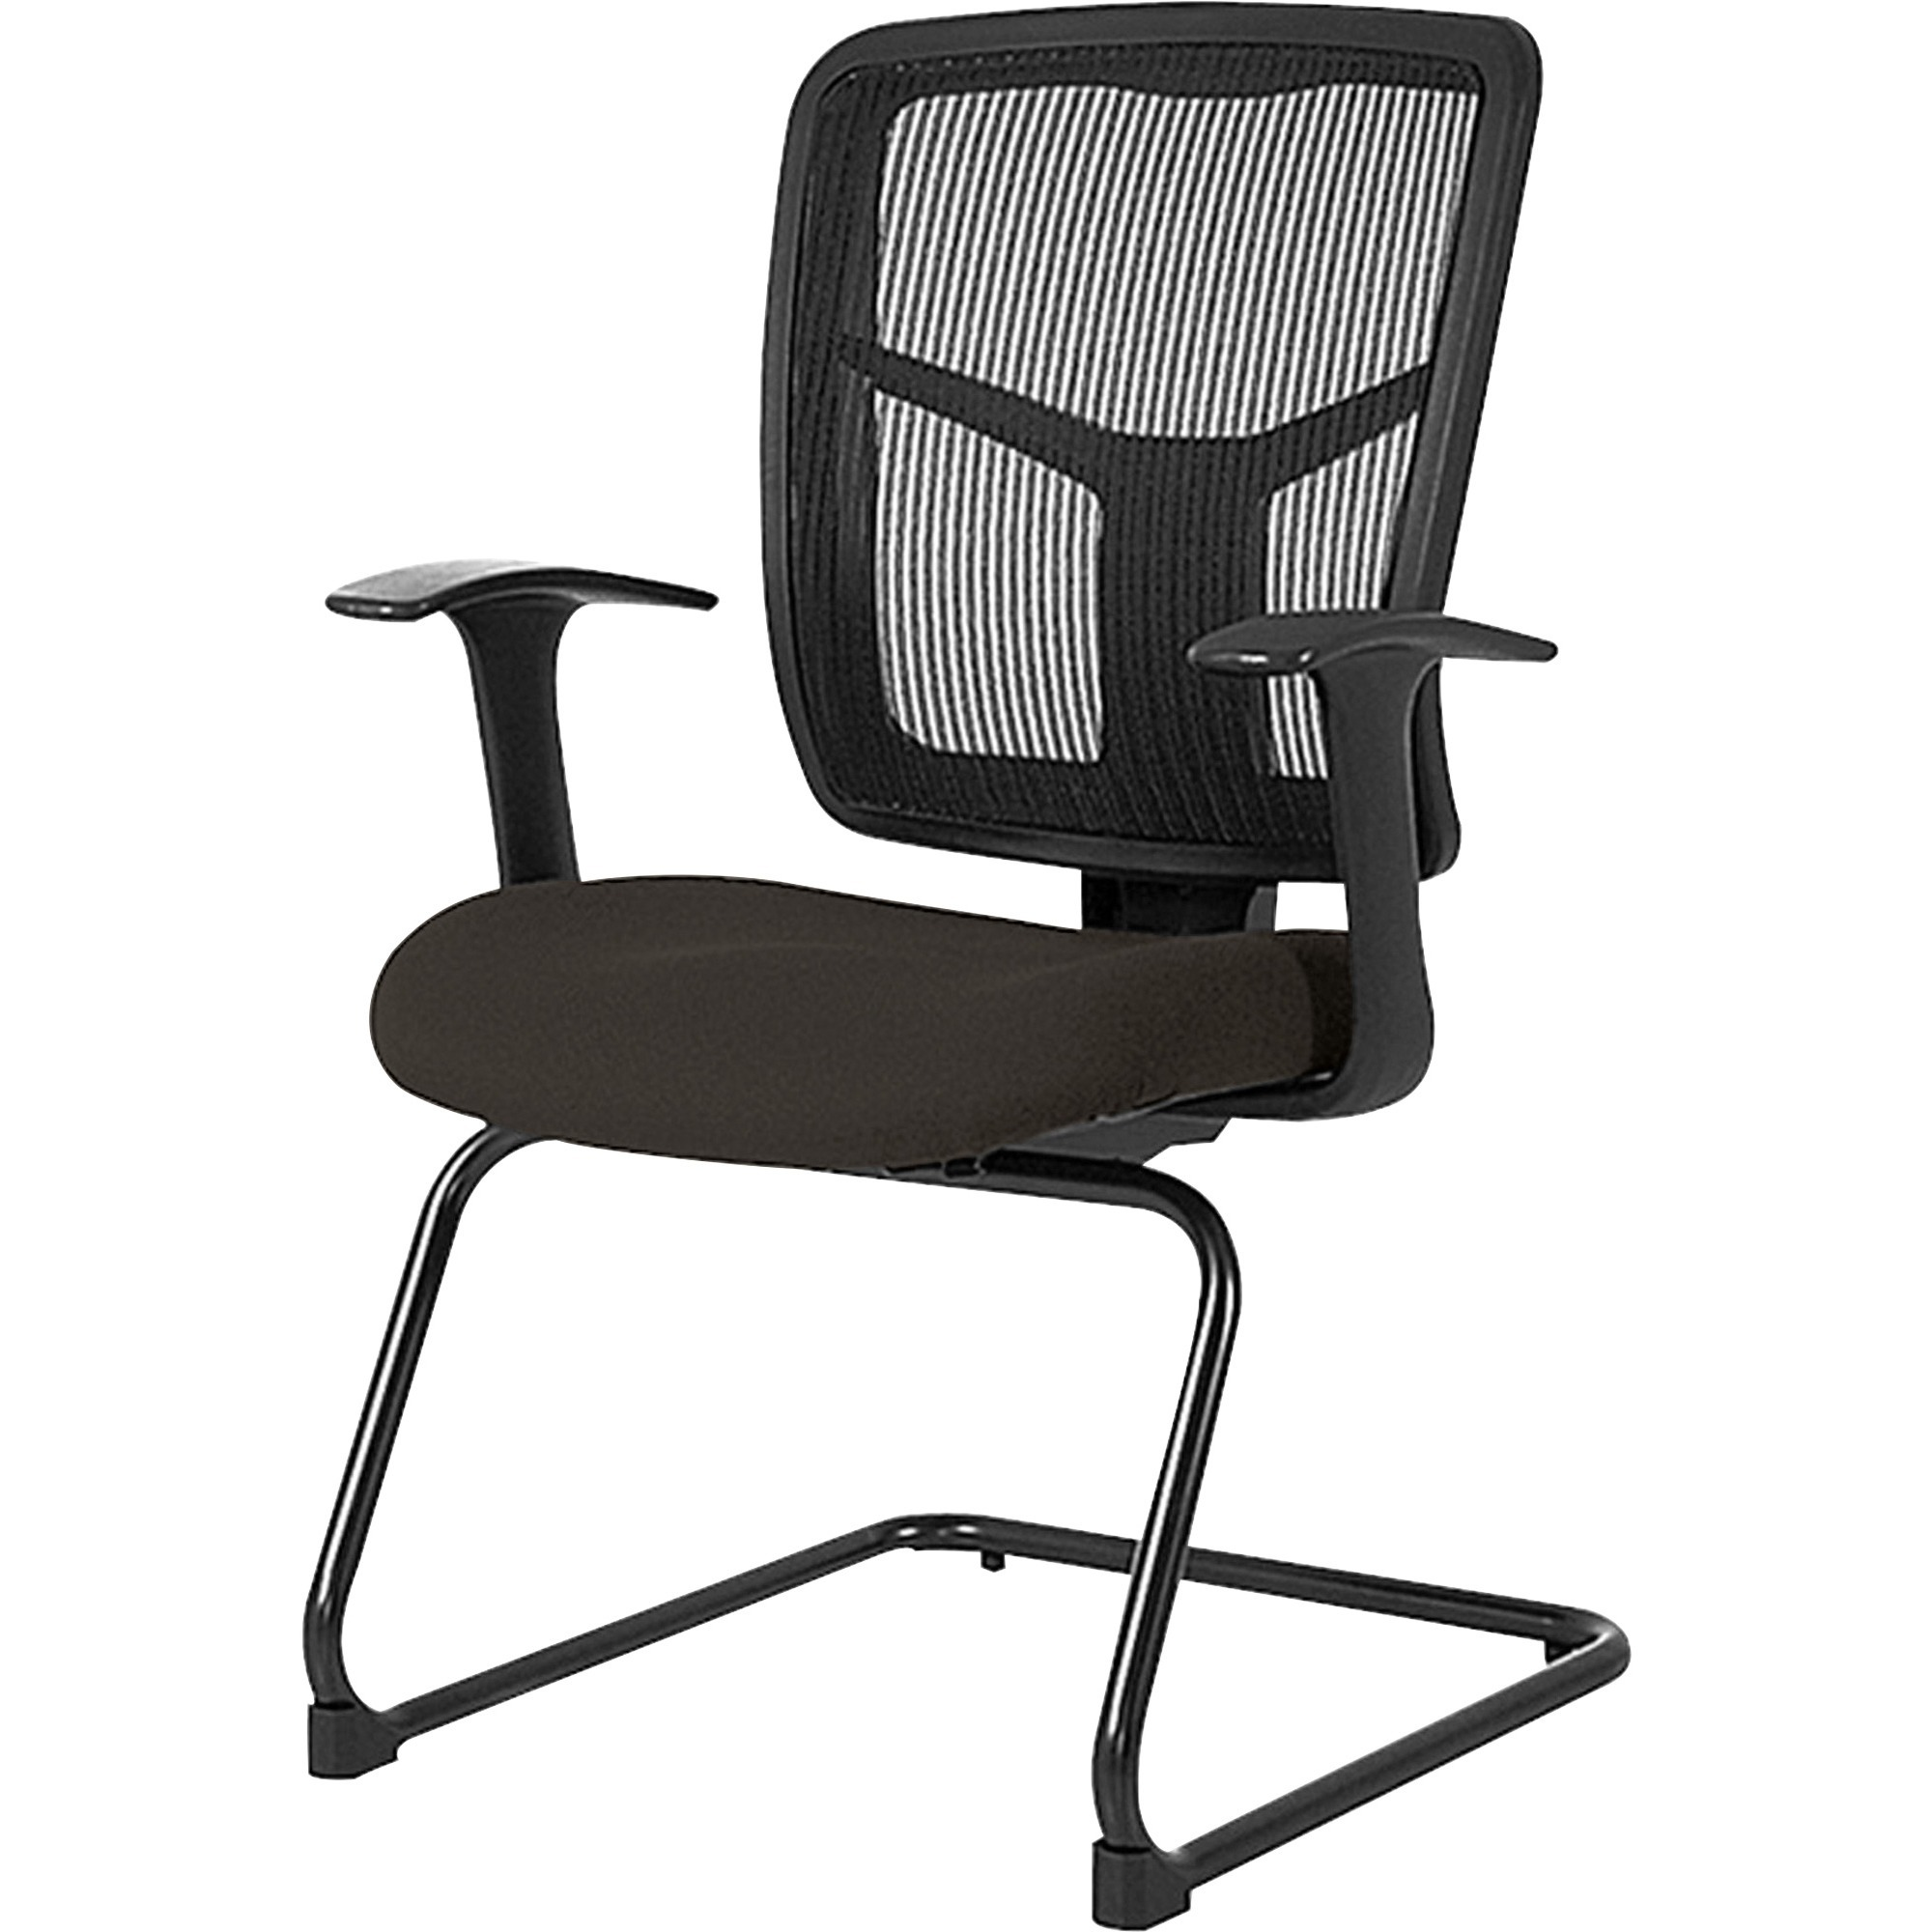 Lorell Mesh Back Guest Chair - Fabric Black Seat - Nylon